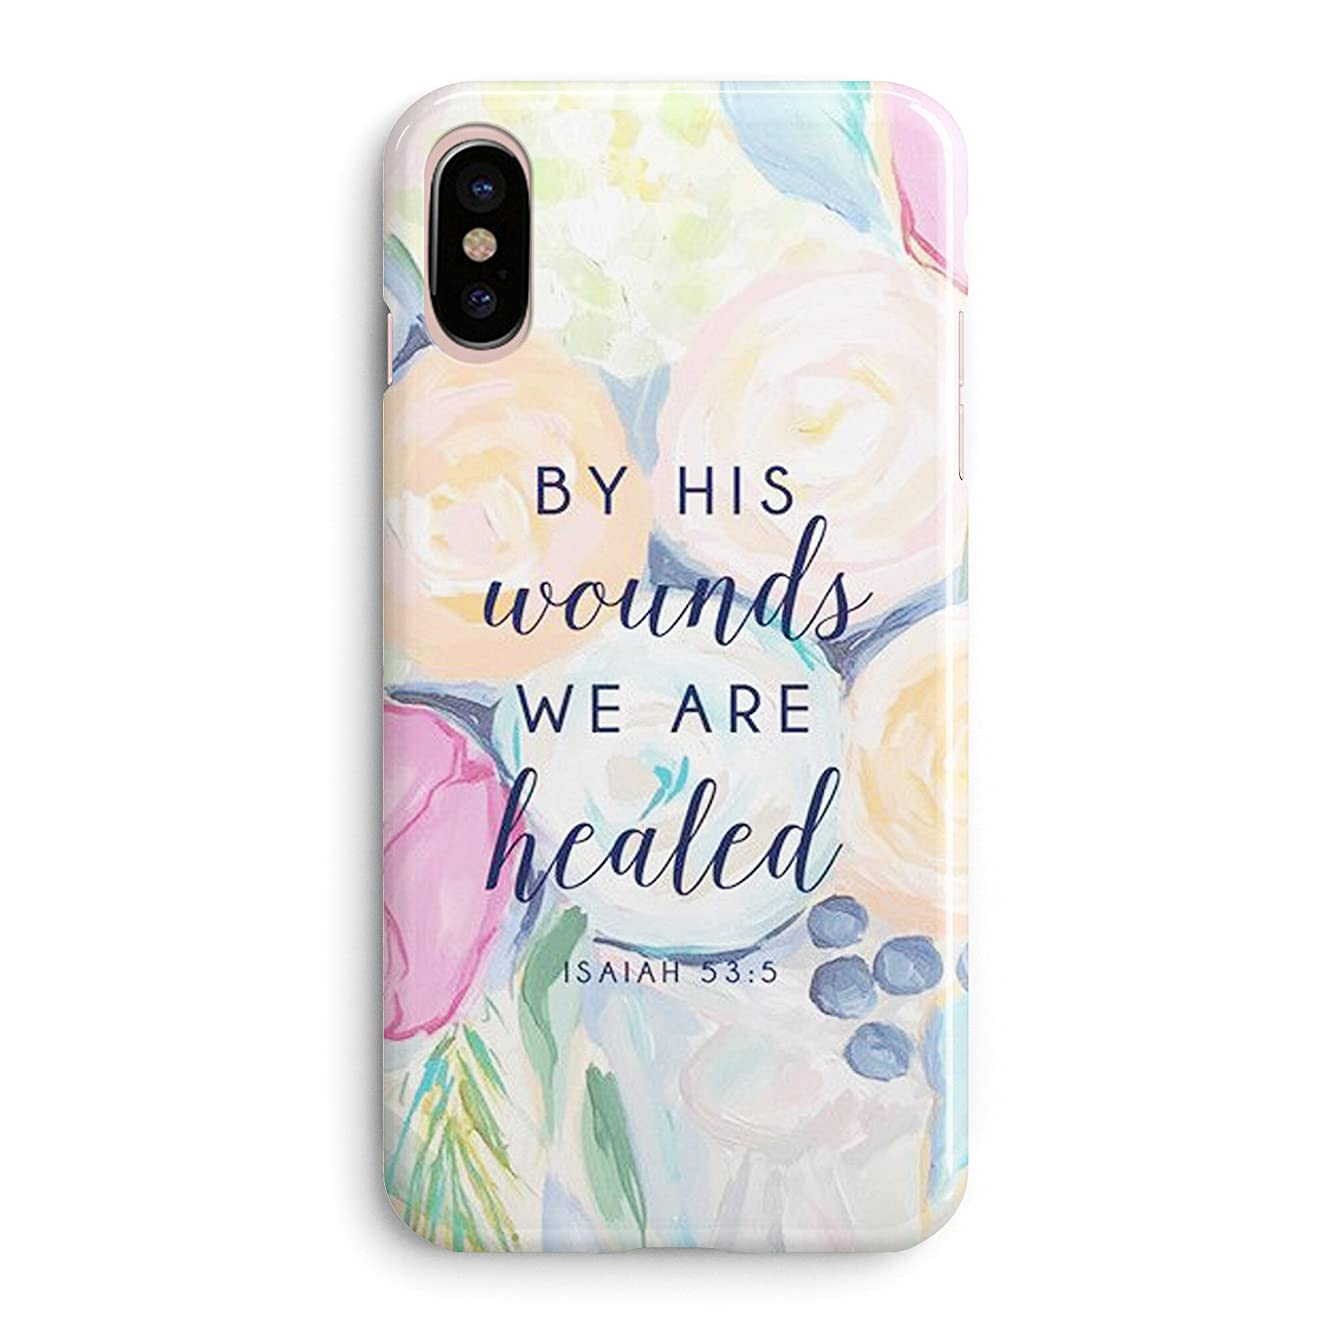 iPhone Xs Max Case Girls,Women Life Power Quotes Cute Flowers Floral Women Christian Quotes Bible Verses Inspirational Isaiah 53:5 We are Healed Christ Lord Soft Case Compatible for iPhone Xs Max